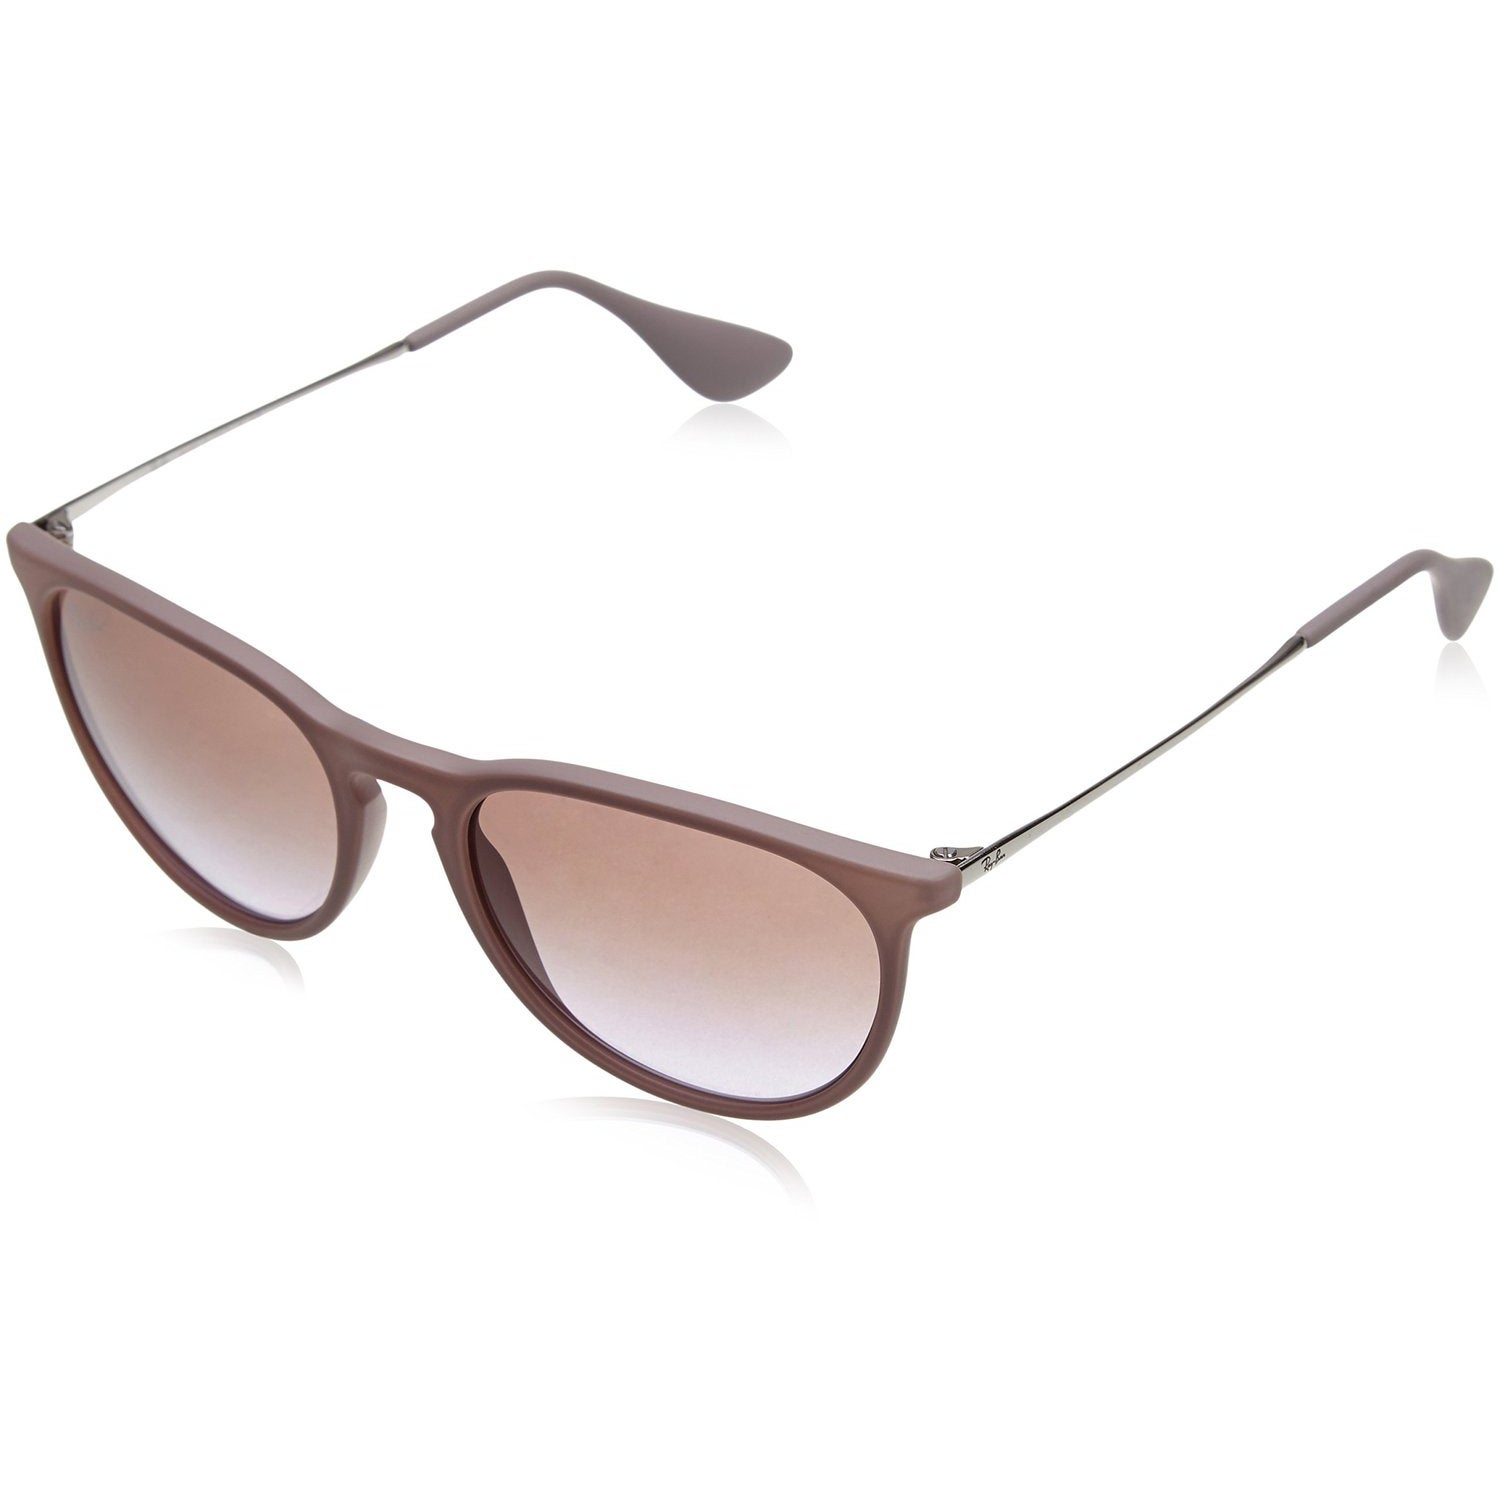 02e649a93b6 Shop RayBan Women s 54MM Erika Wayfarer Sunglasses (Rubber Sand Frame Brown  Violet Gradient Lens) - Free Shipping Today - Overstock - 12048659